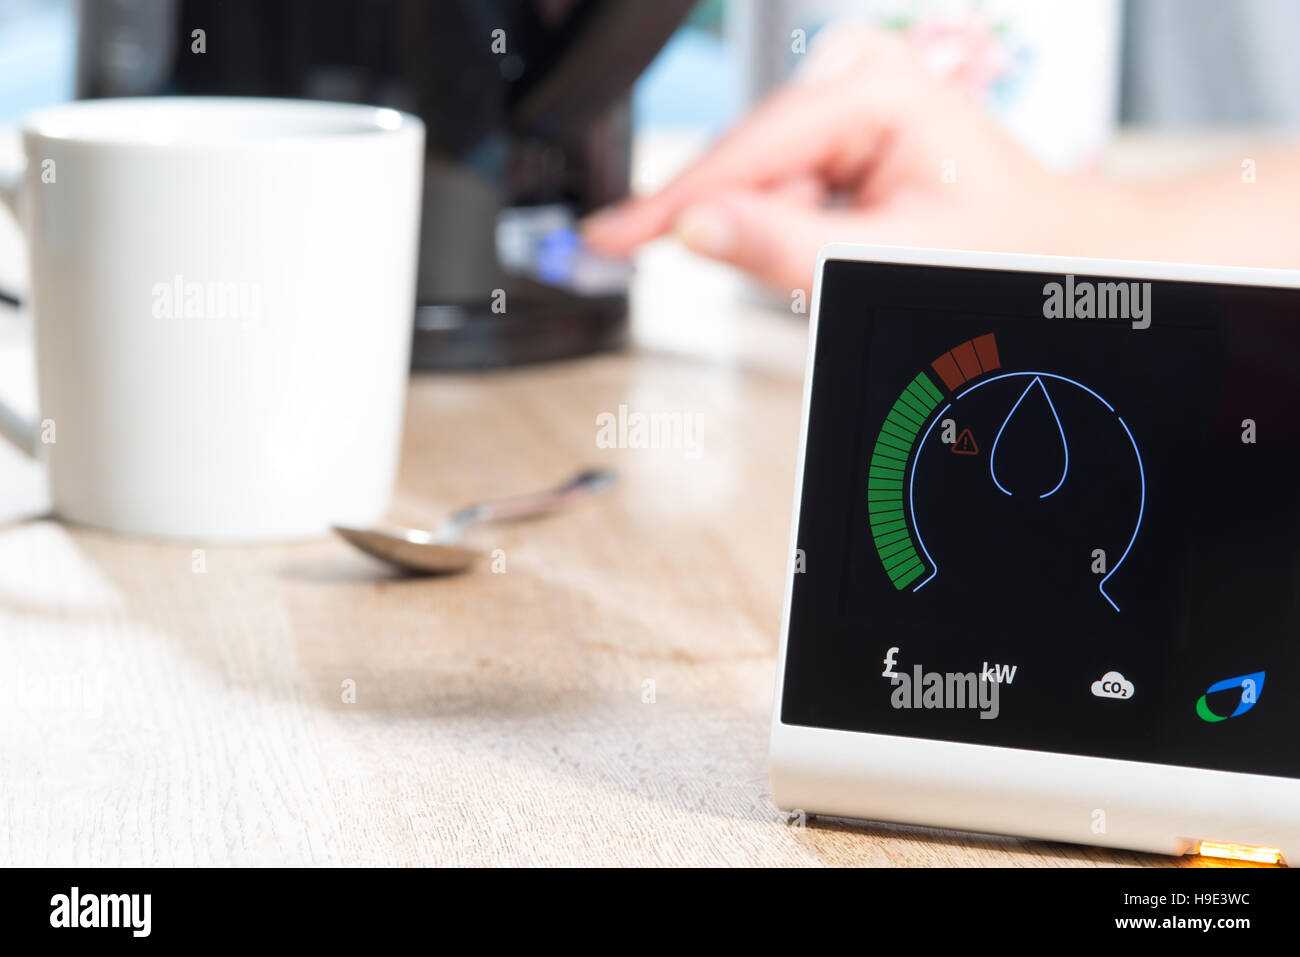 A smart meter is displayed on a  wooden surface near mug and spoon and a kettle which is being switched on by a - Stock Image